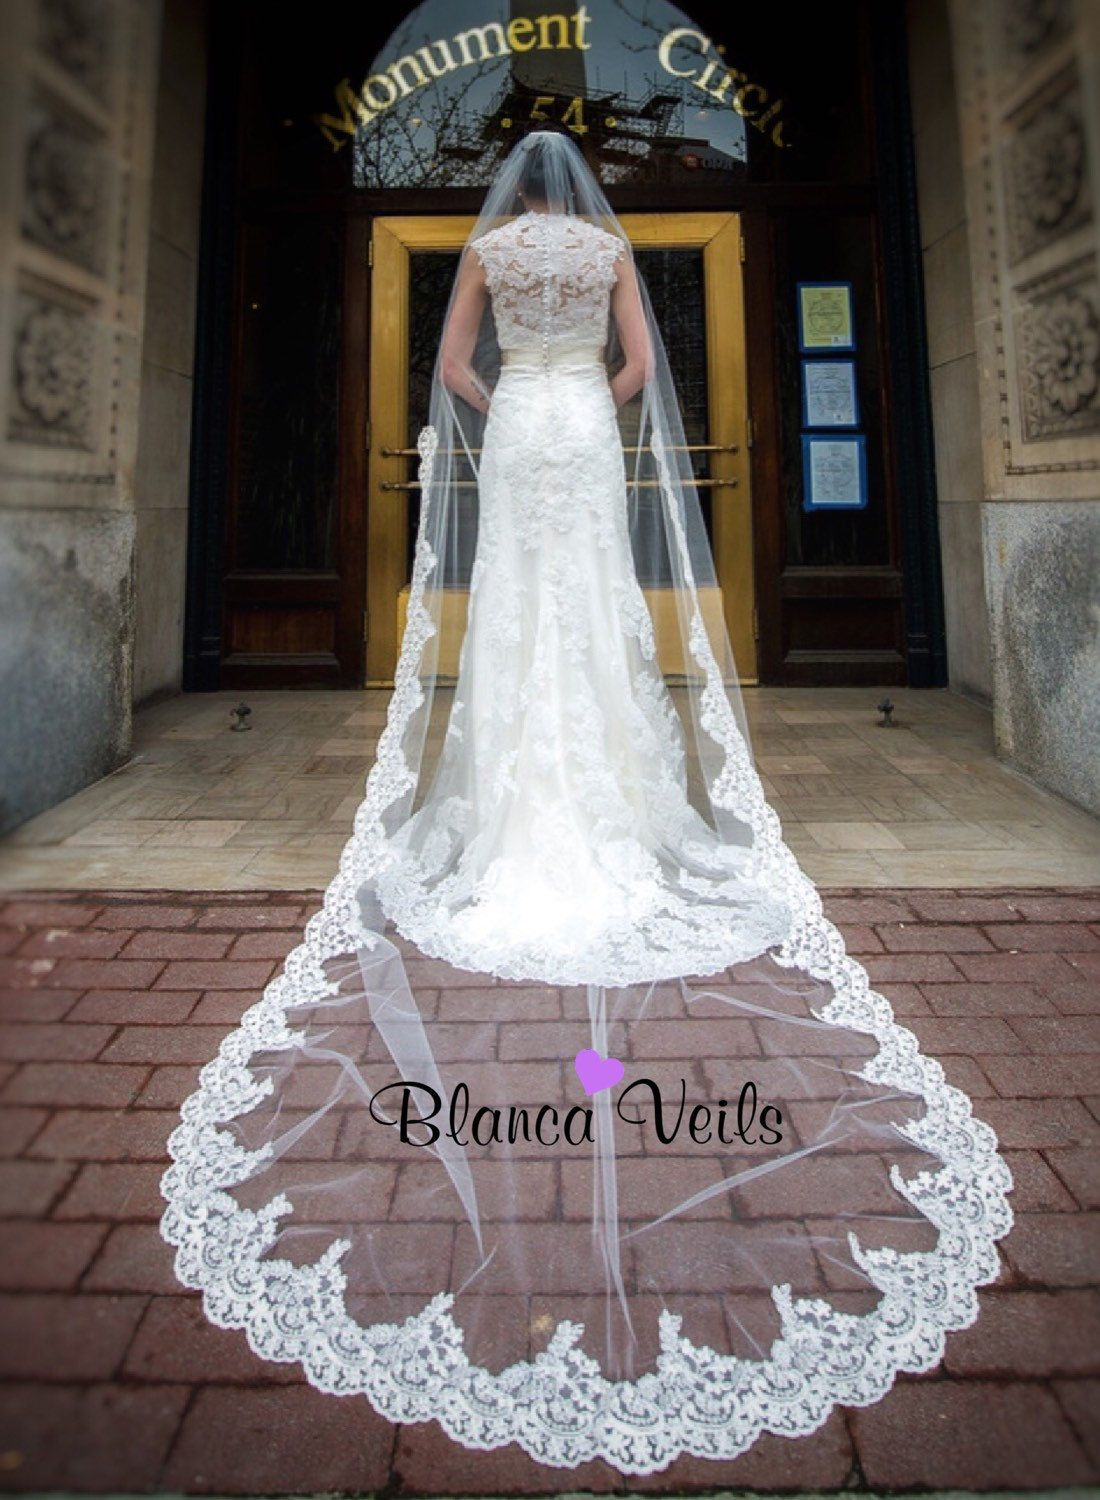 This Lady Hand Makes Wedding Veils For Brides That Are Actually Affordable AMAZING